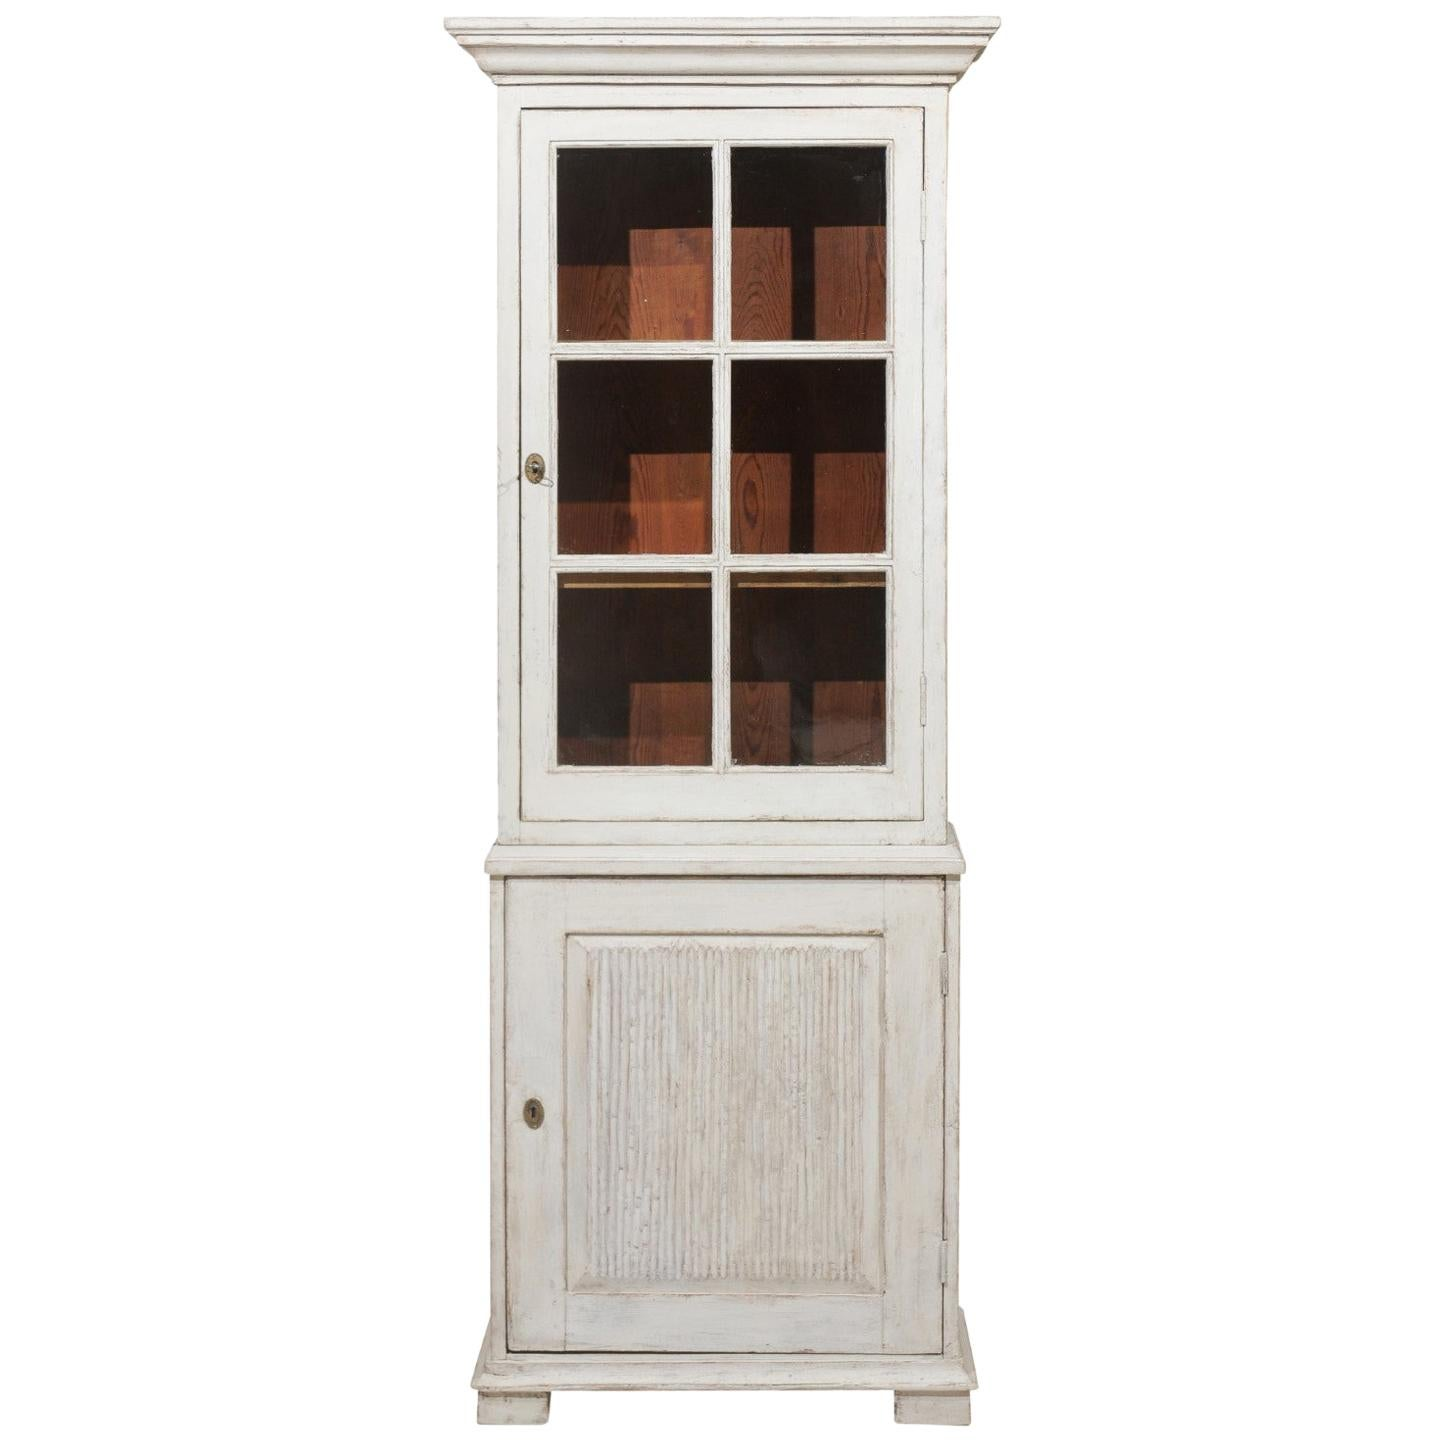 Swedish 19th Century Painted Wood Two-Part Vitrine Cabinet with Glass Door